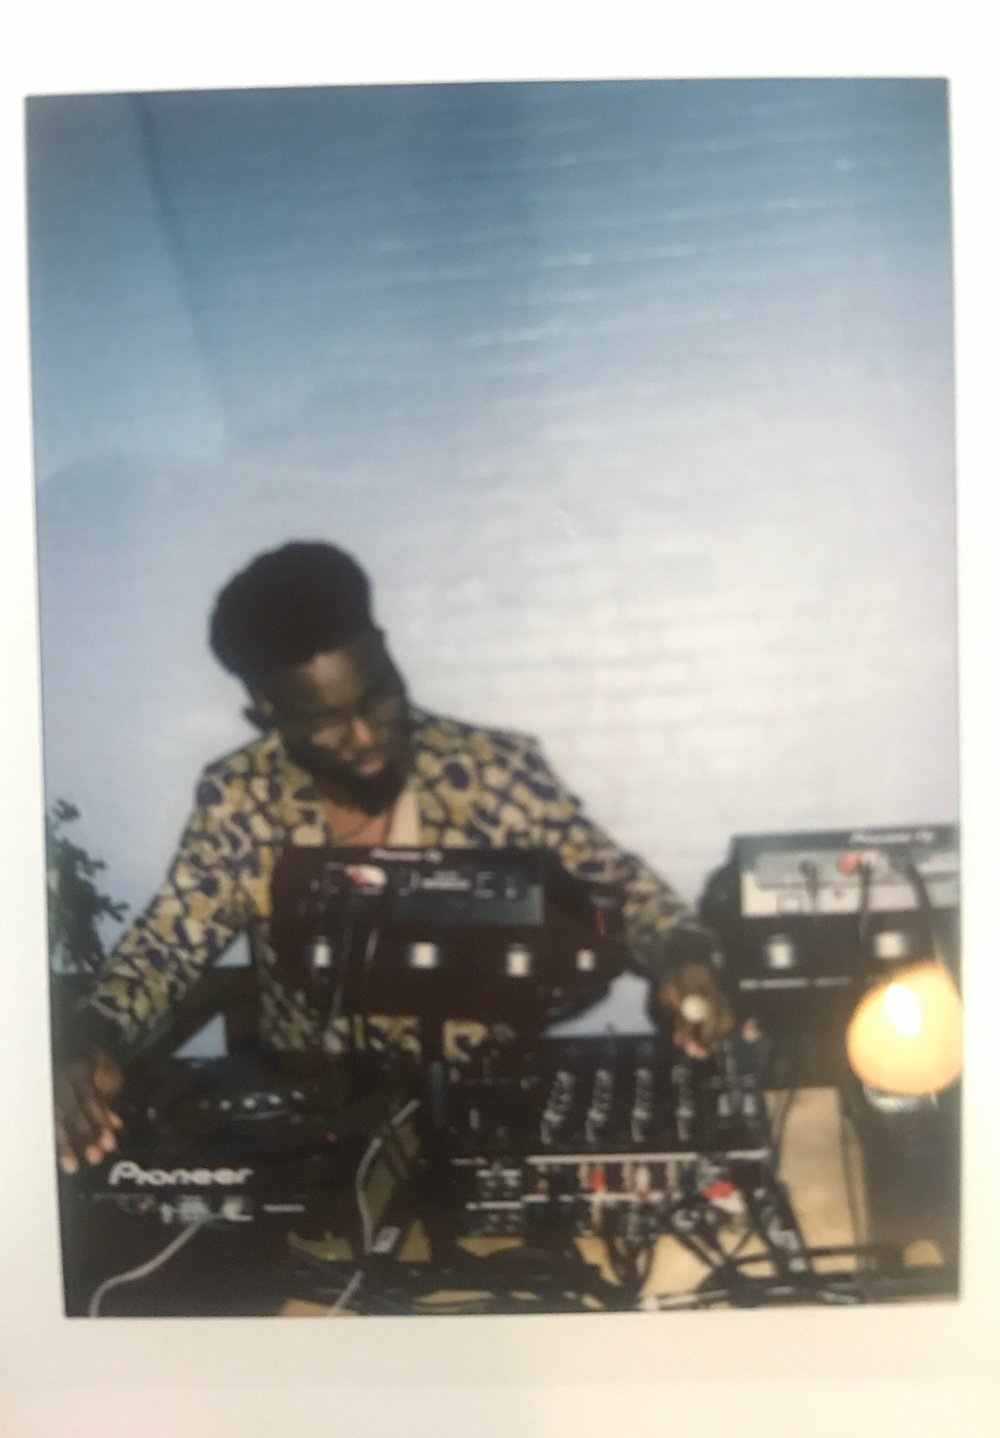 Eli Fola (Live) - Thurdsday, August 23rd